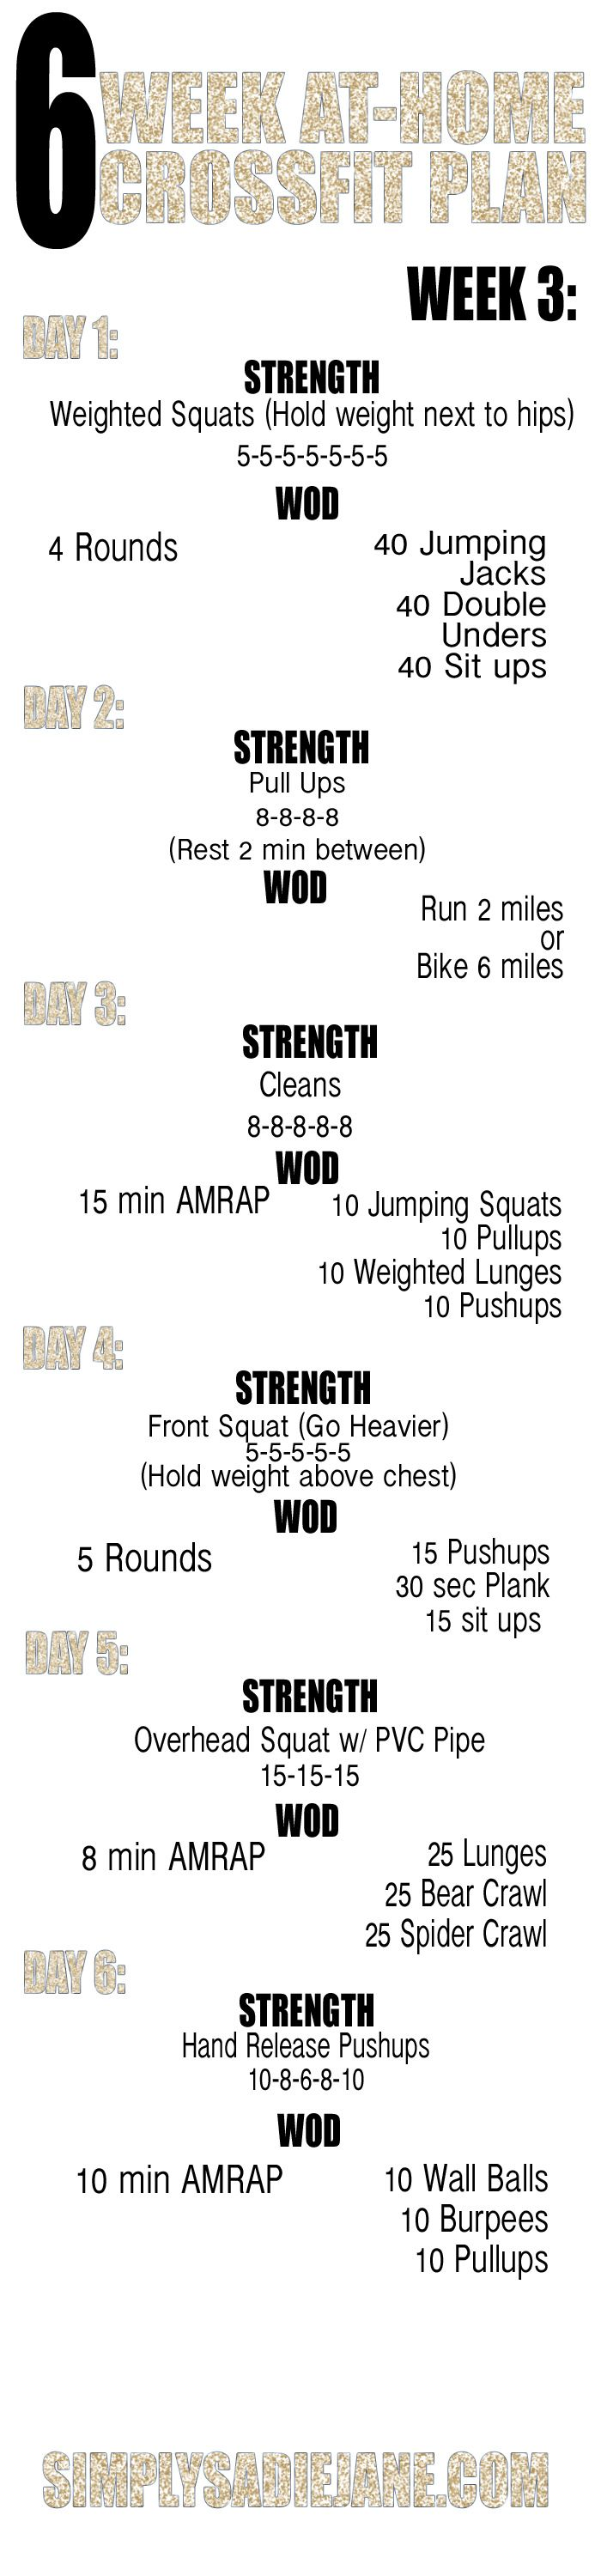 6 week fitness plan Benefits of this 6-week conditioning plan from stack expert giovanni grassi: an increase in relative body strength, speed endurance, stamina & mental toughness.